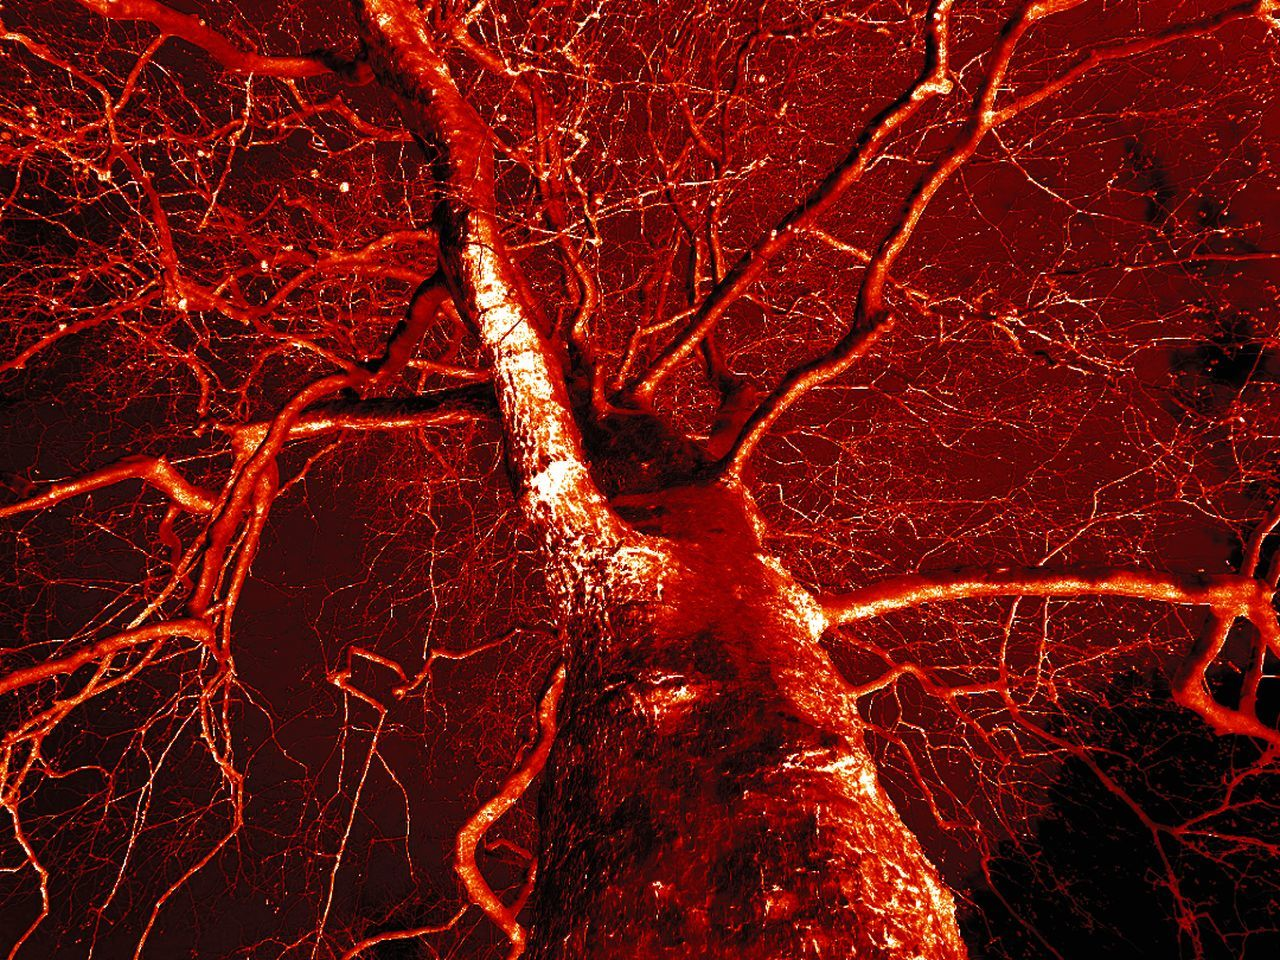 red, outdoors, no people, night, full frame, illuminated, nature, close-up, lava